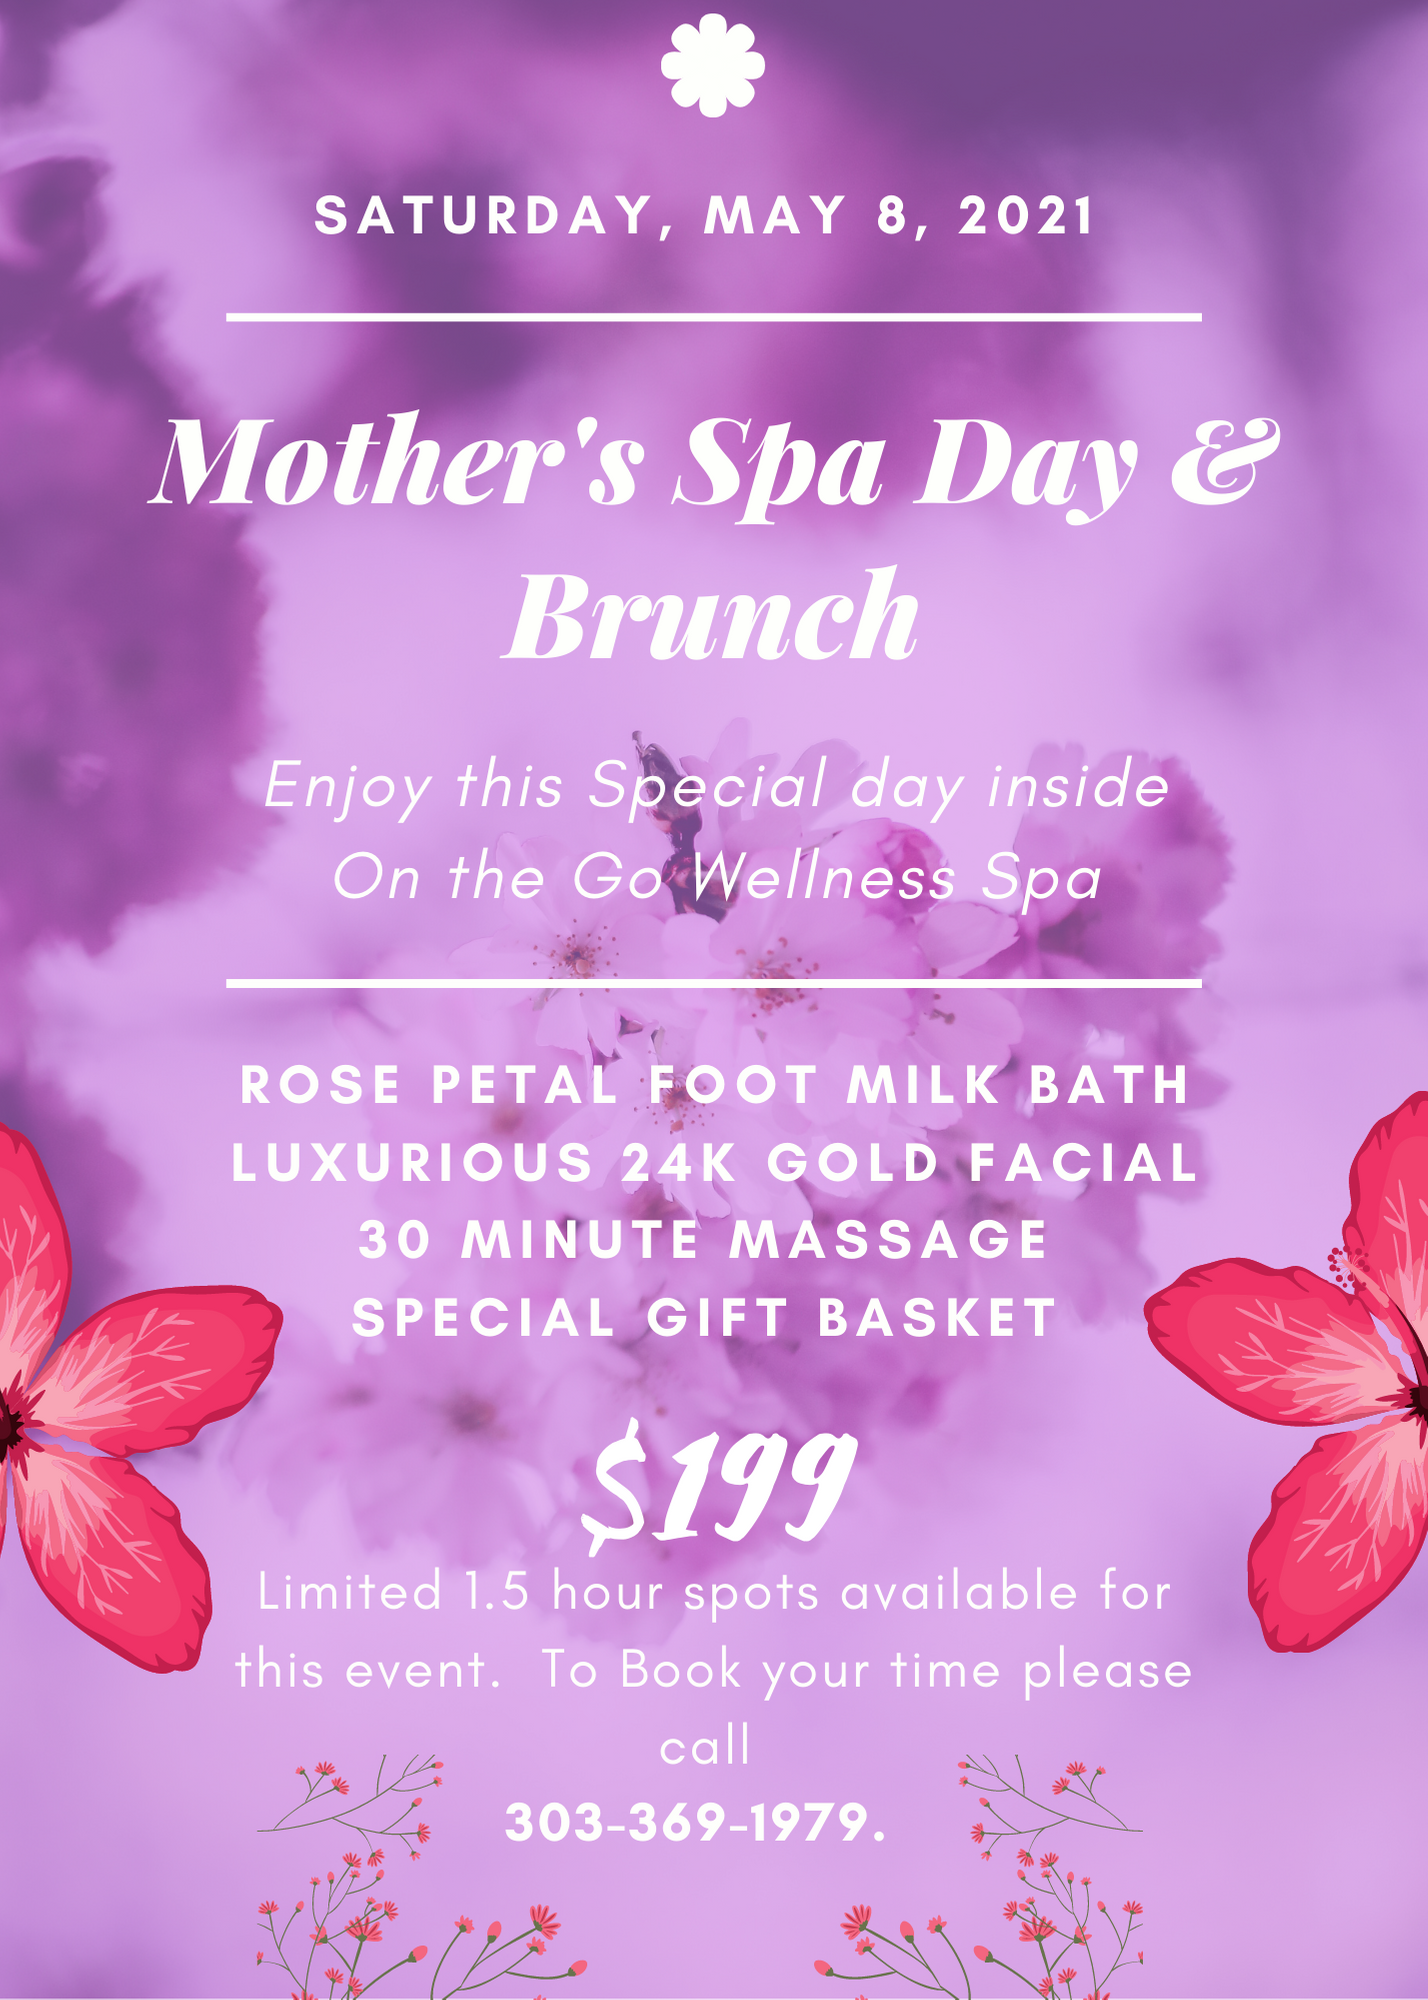 Mothers Spa Day Brunch 2021